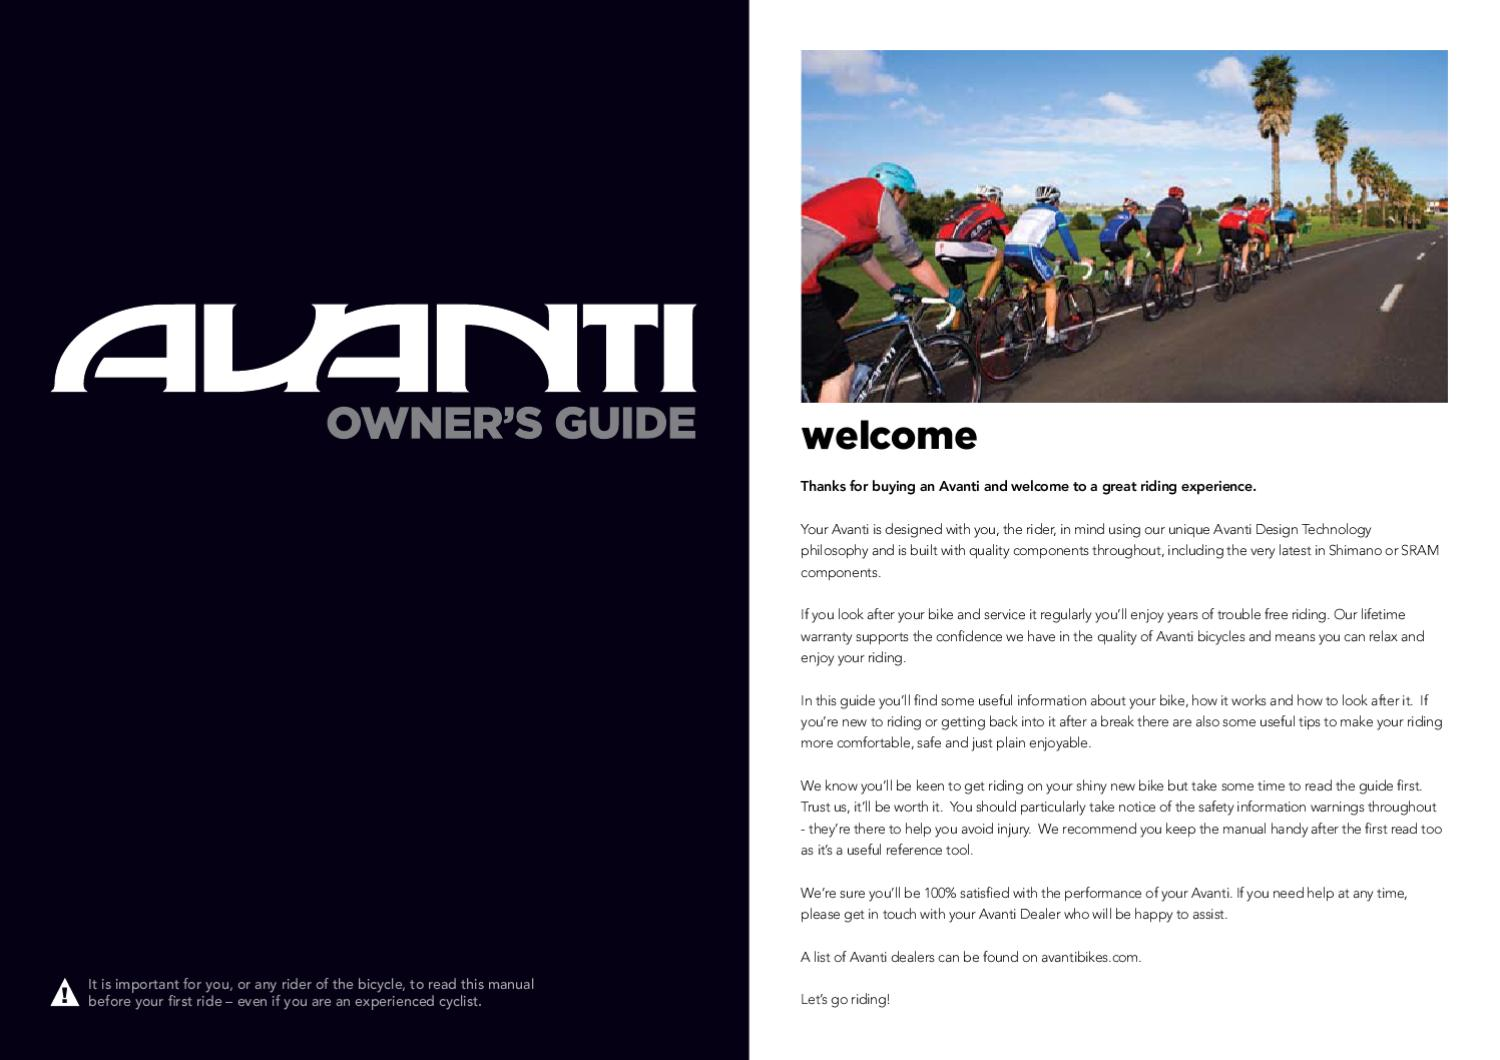 Avanti Bikes Owners Manual by AvantiPlus Cycles - issuu